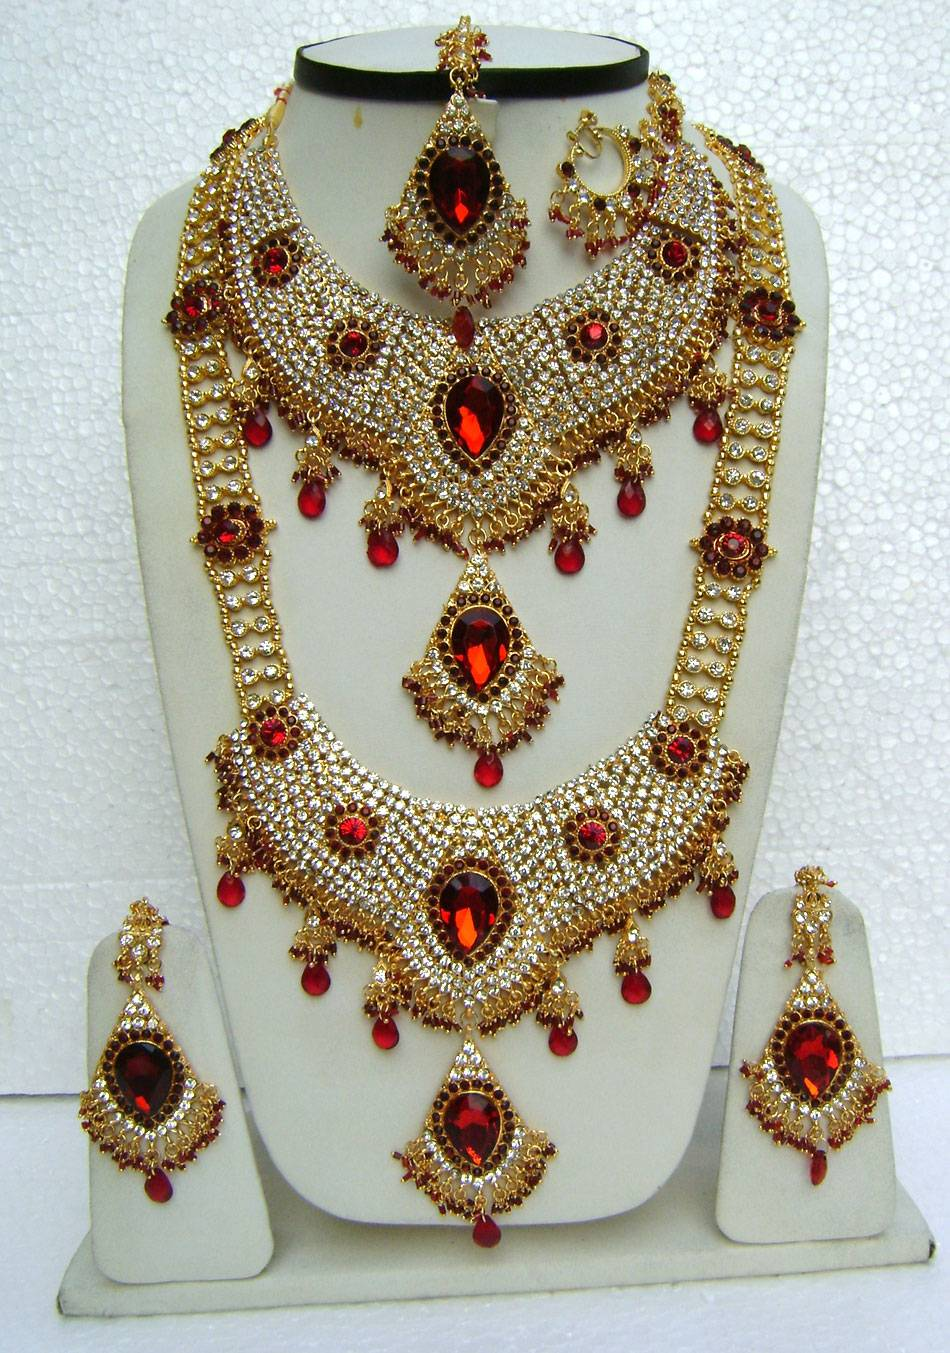 AMERICAN DIAMOND JEWELRY SAREES PARTYWEAR KUNDAN NECKLACE WEDDING ...